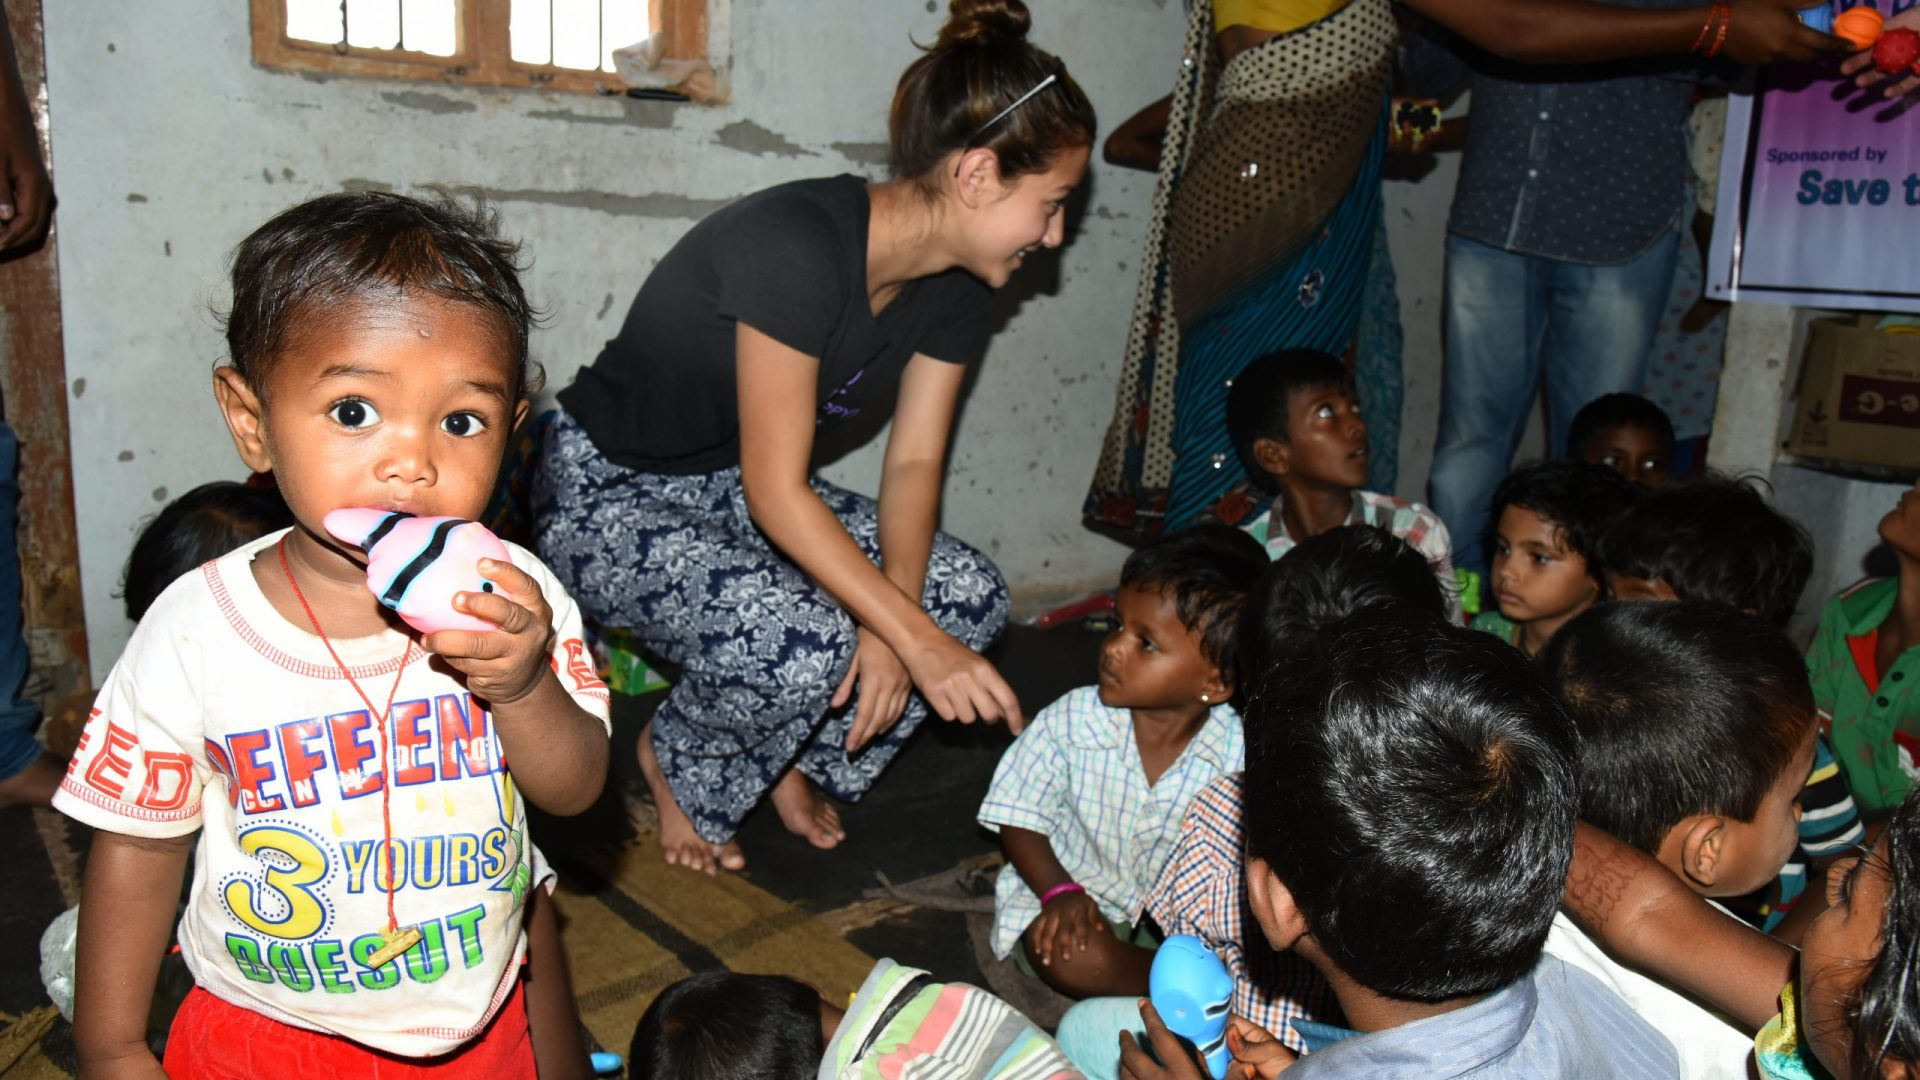 Volunteer at Seruds creche program : day care centers for children. Sponsor Sponsor Mid-day Meals, education, toyys